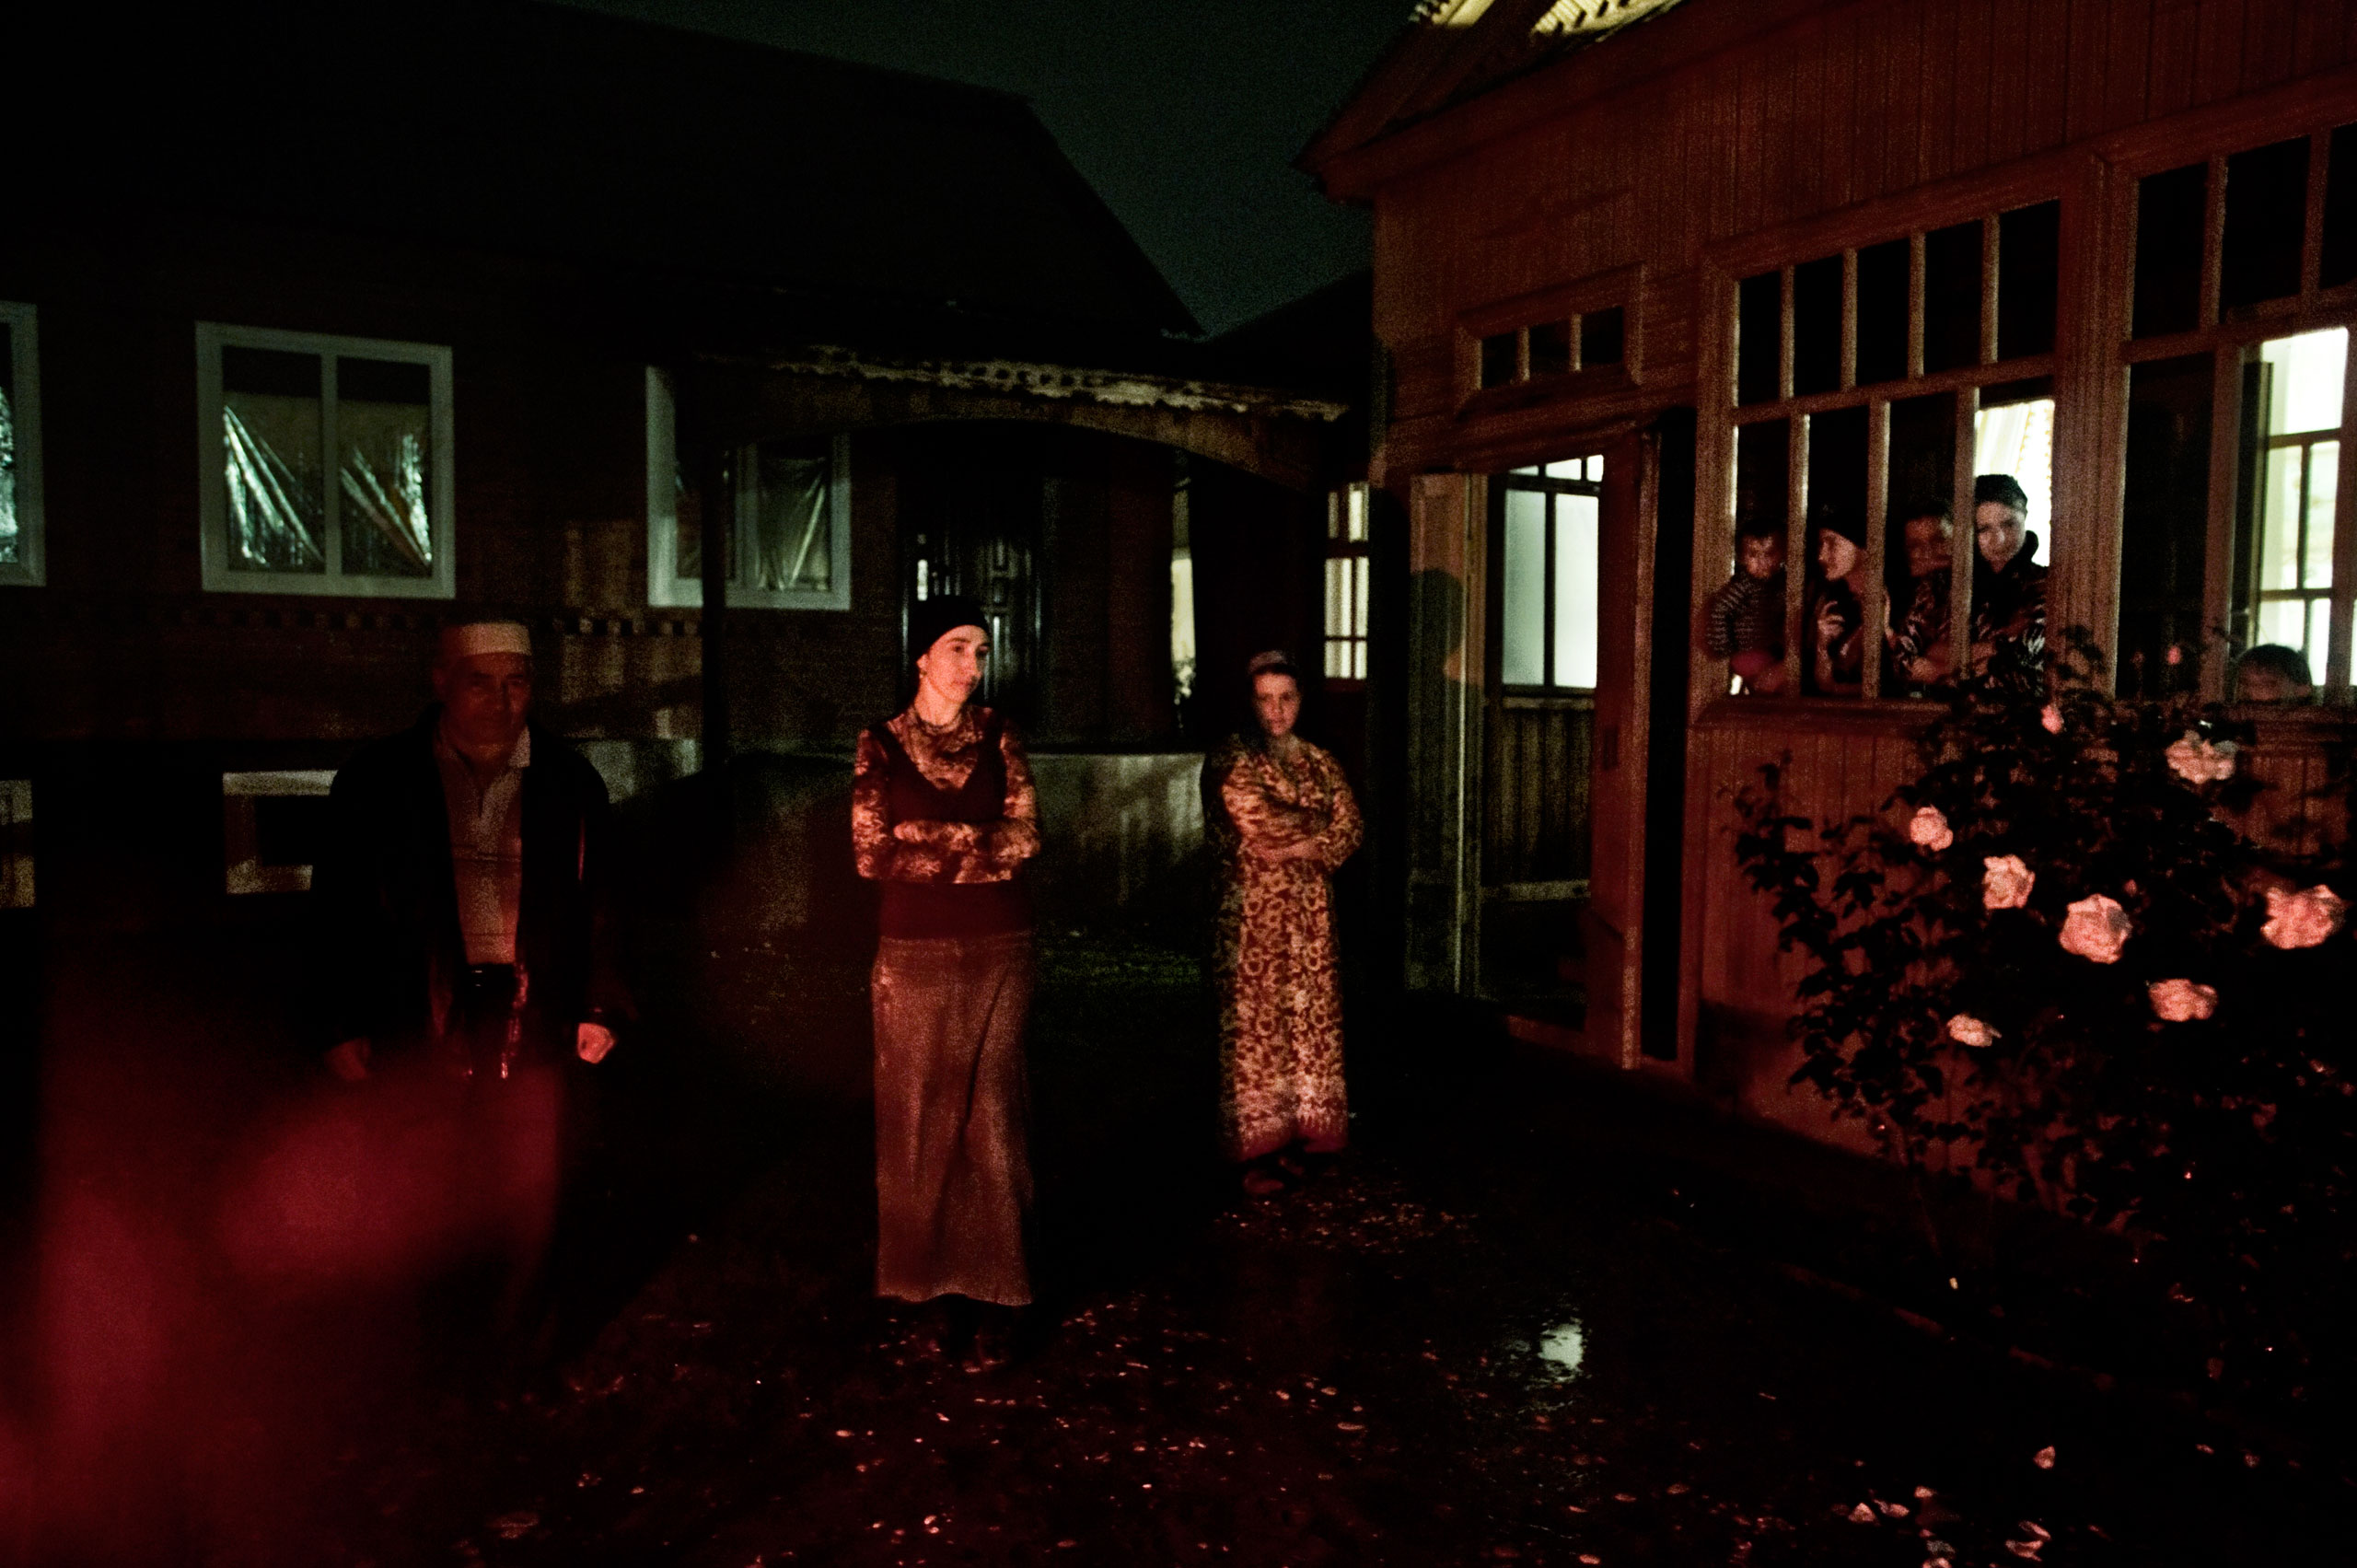 Chechen women whose family members were abducted and killed by Chechen military in Shali, Chechnya, October 2009.